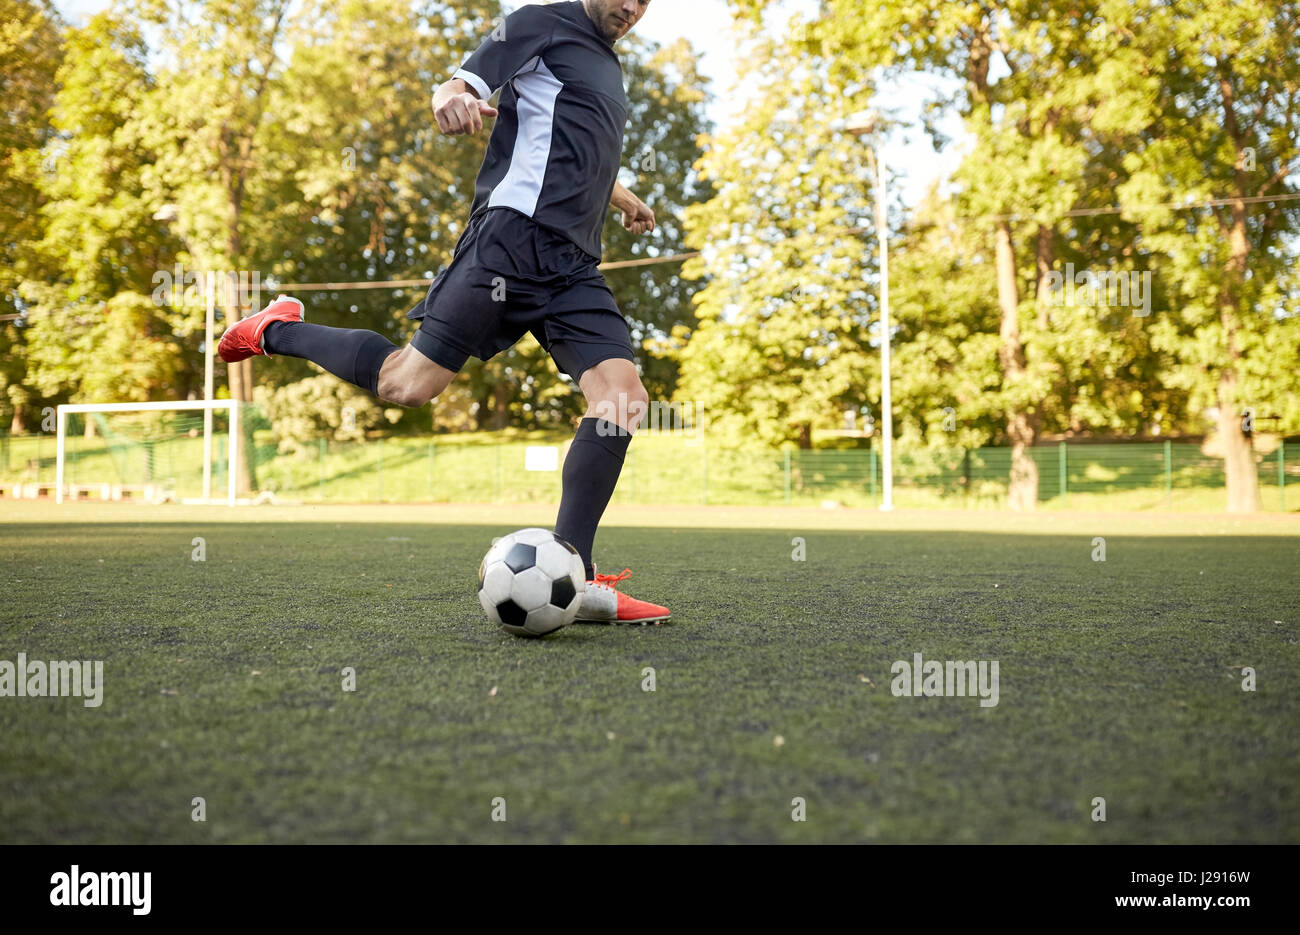 soccer player playing with ball on football field - Stock Image